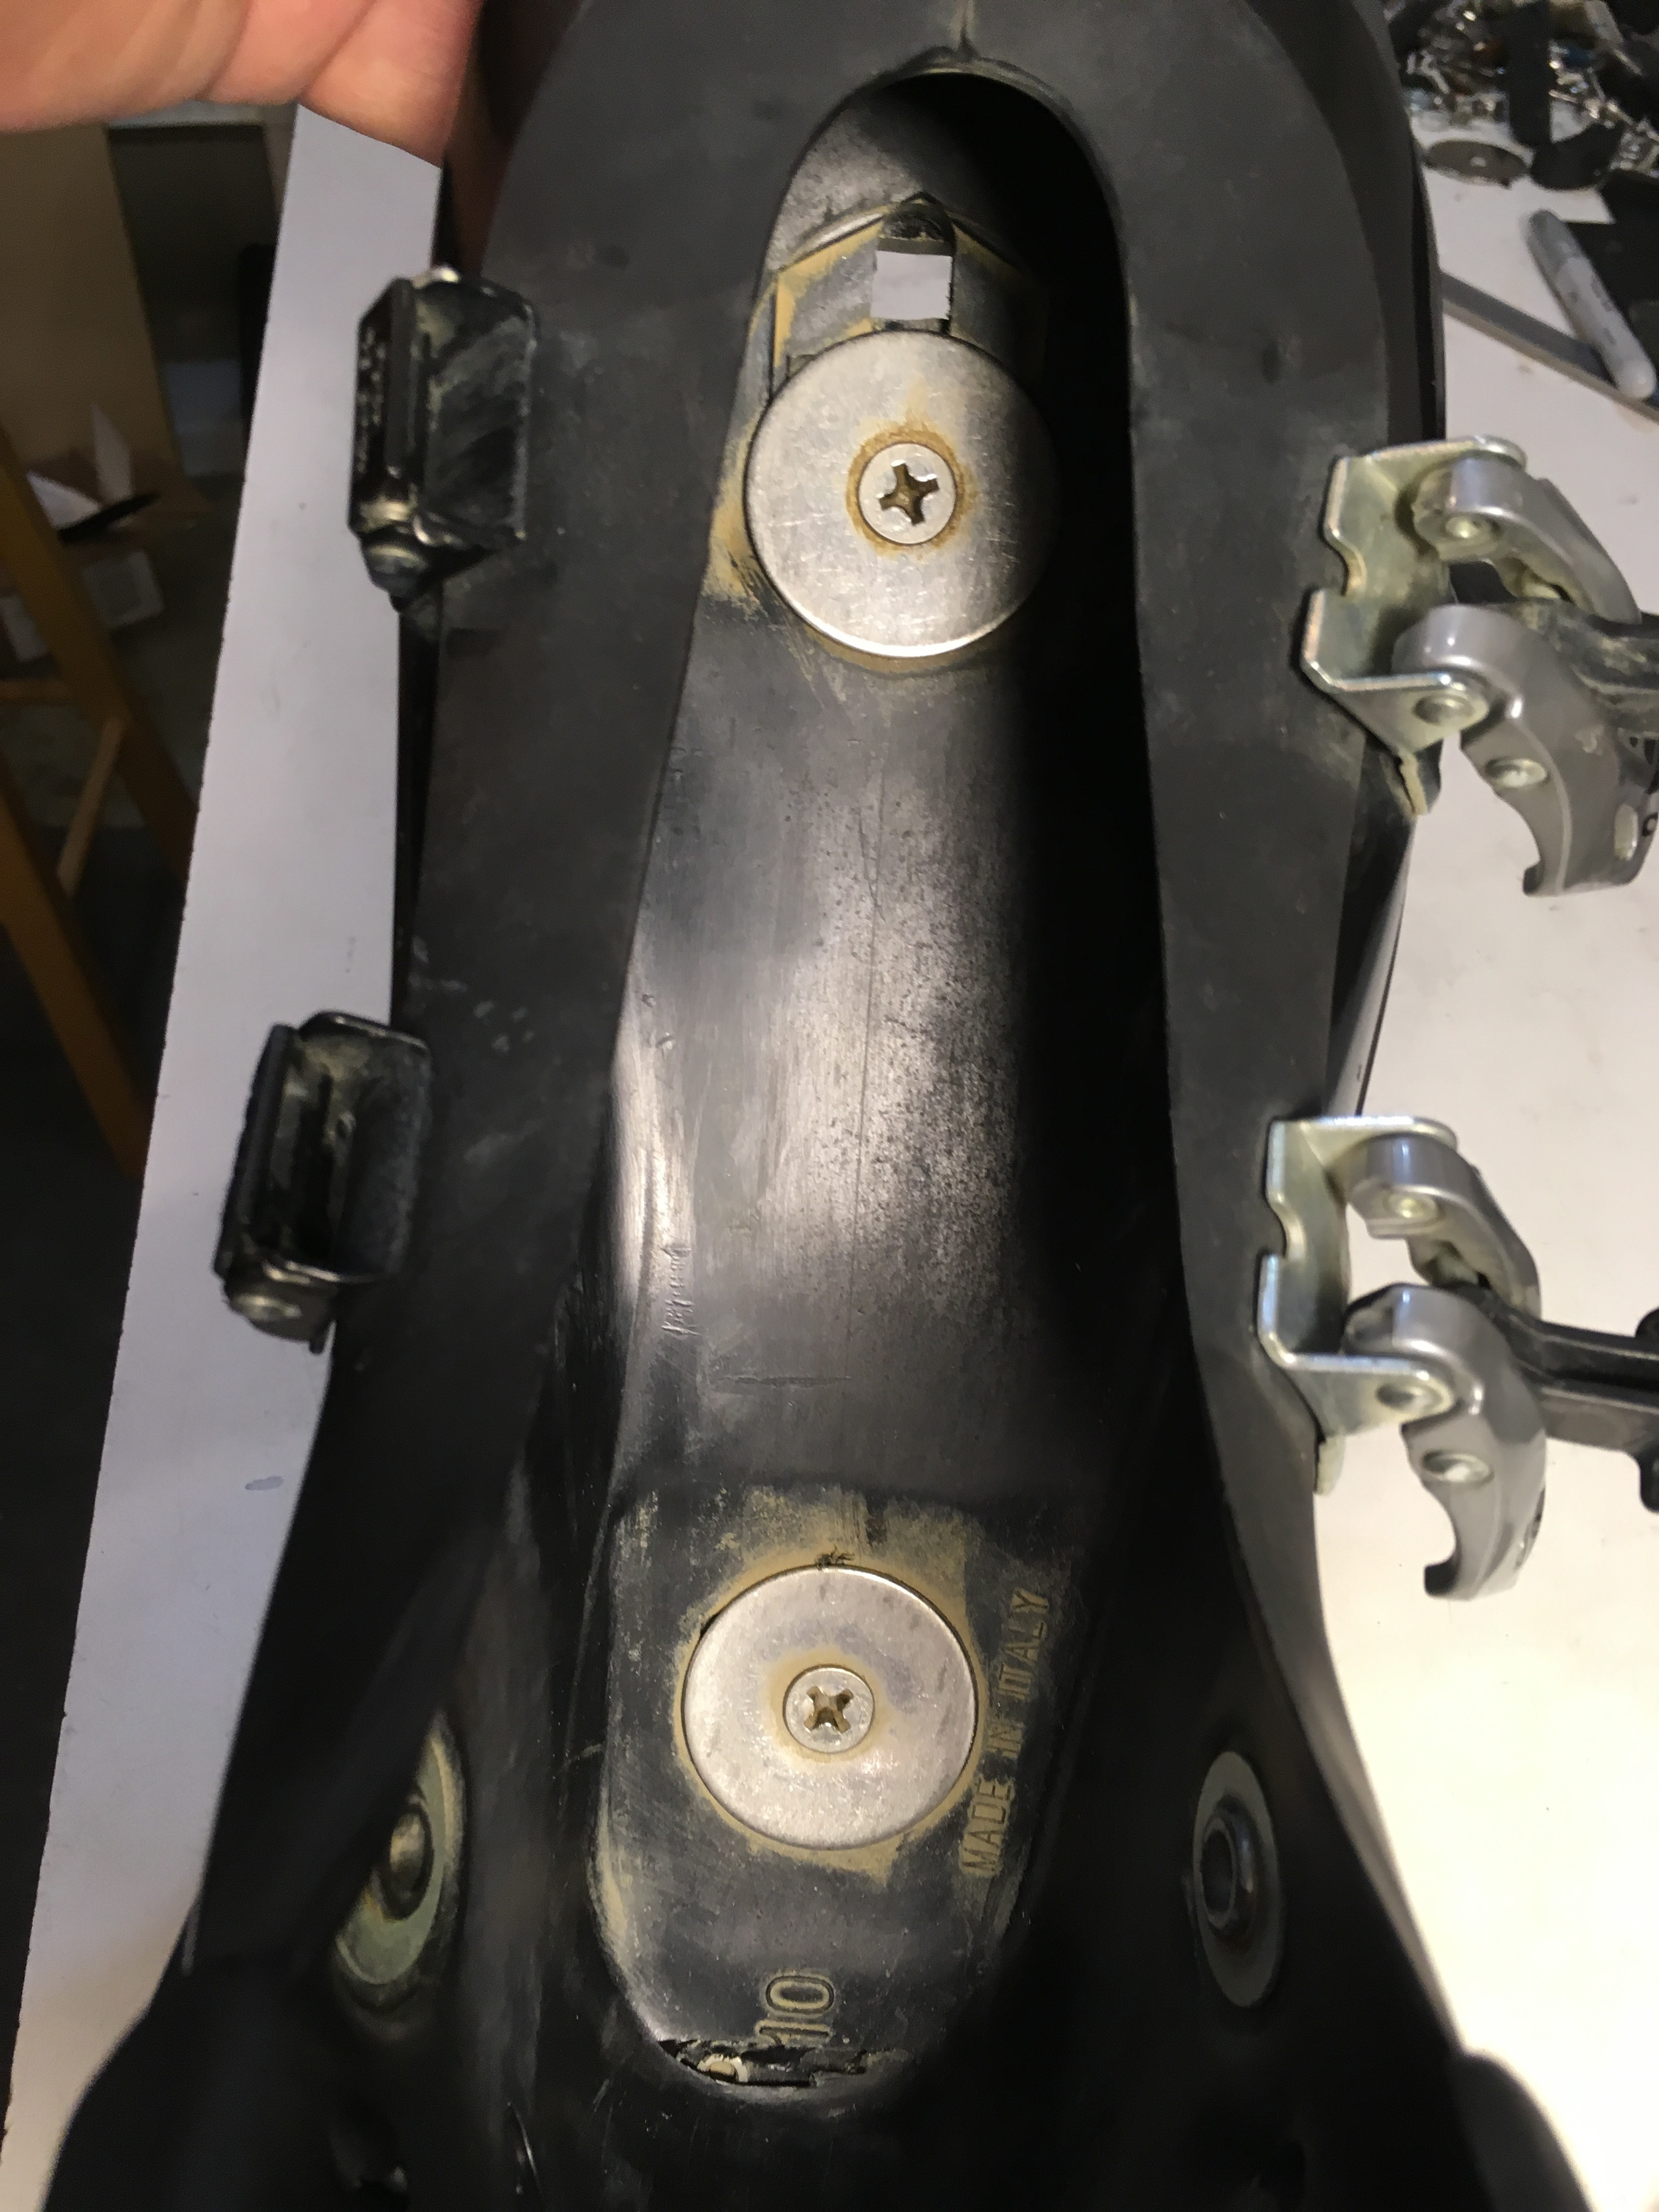 Mounting Screws from inside of boot.